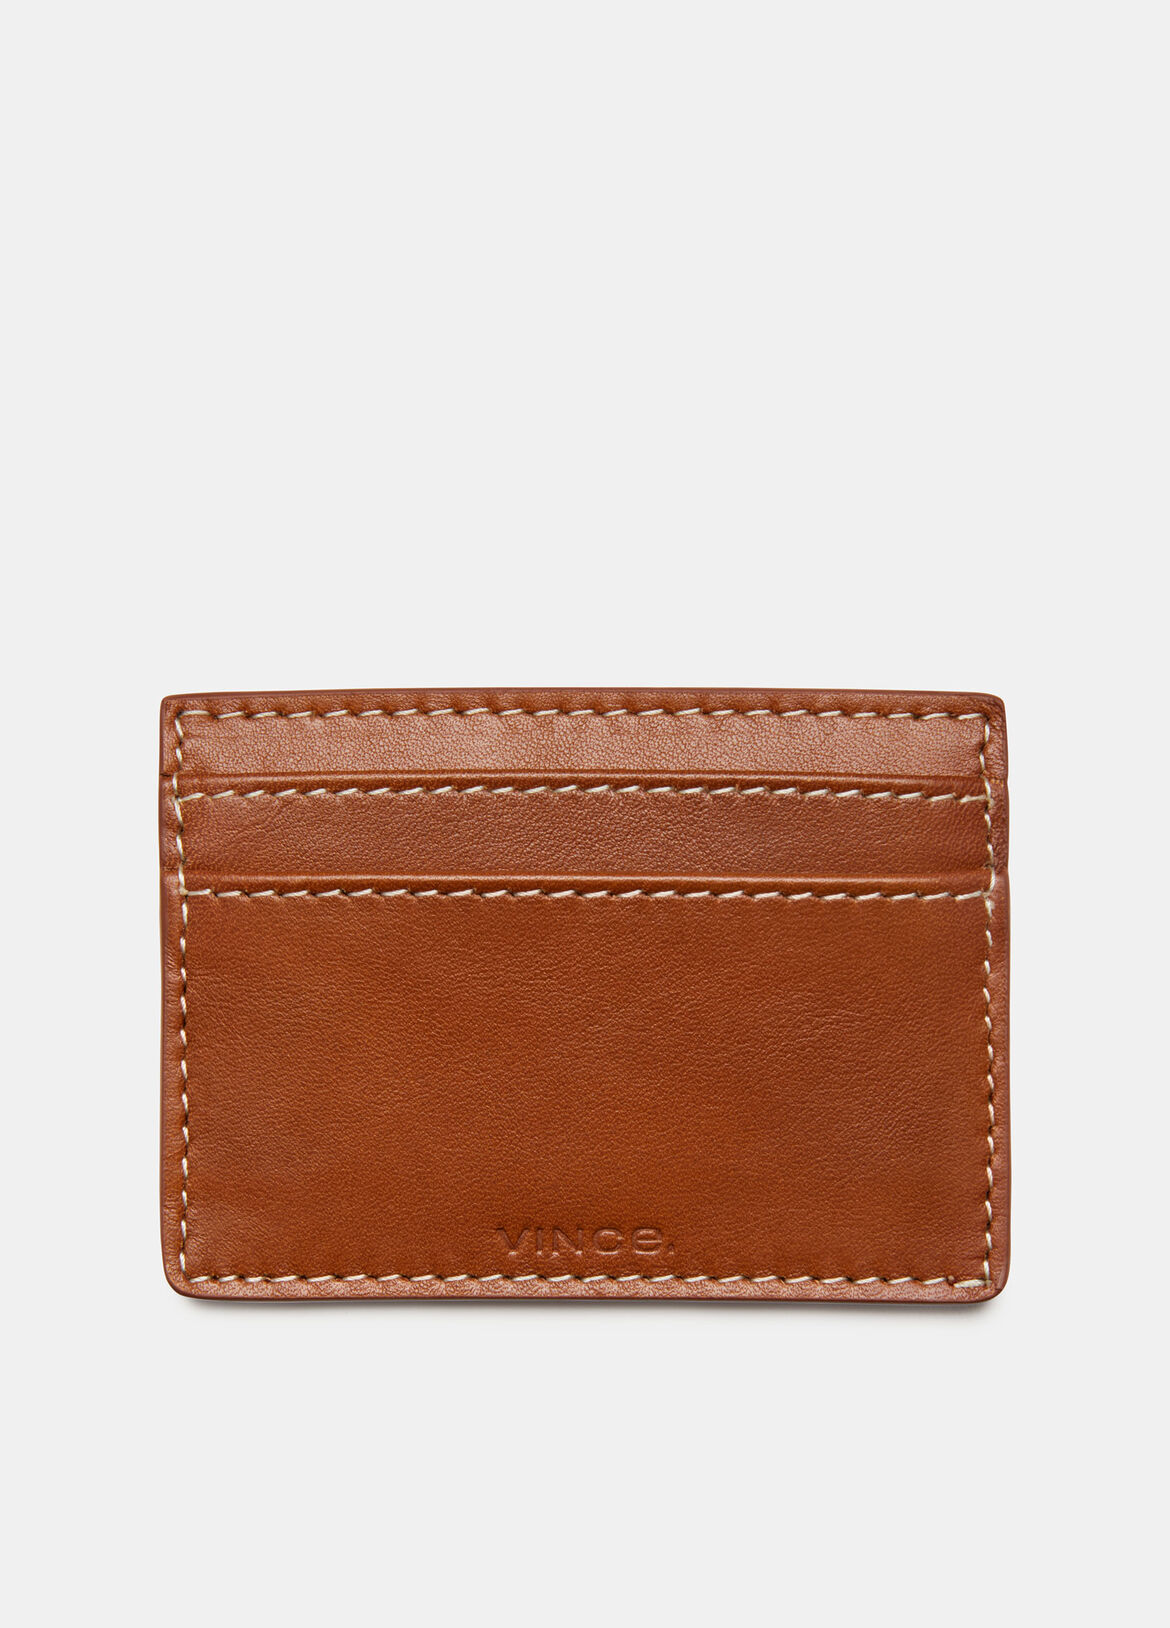 빈스 Vince Exclusive / Card Holder,SADDLE